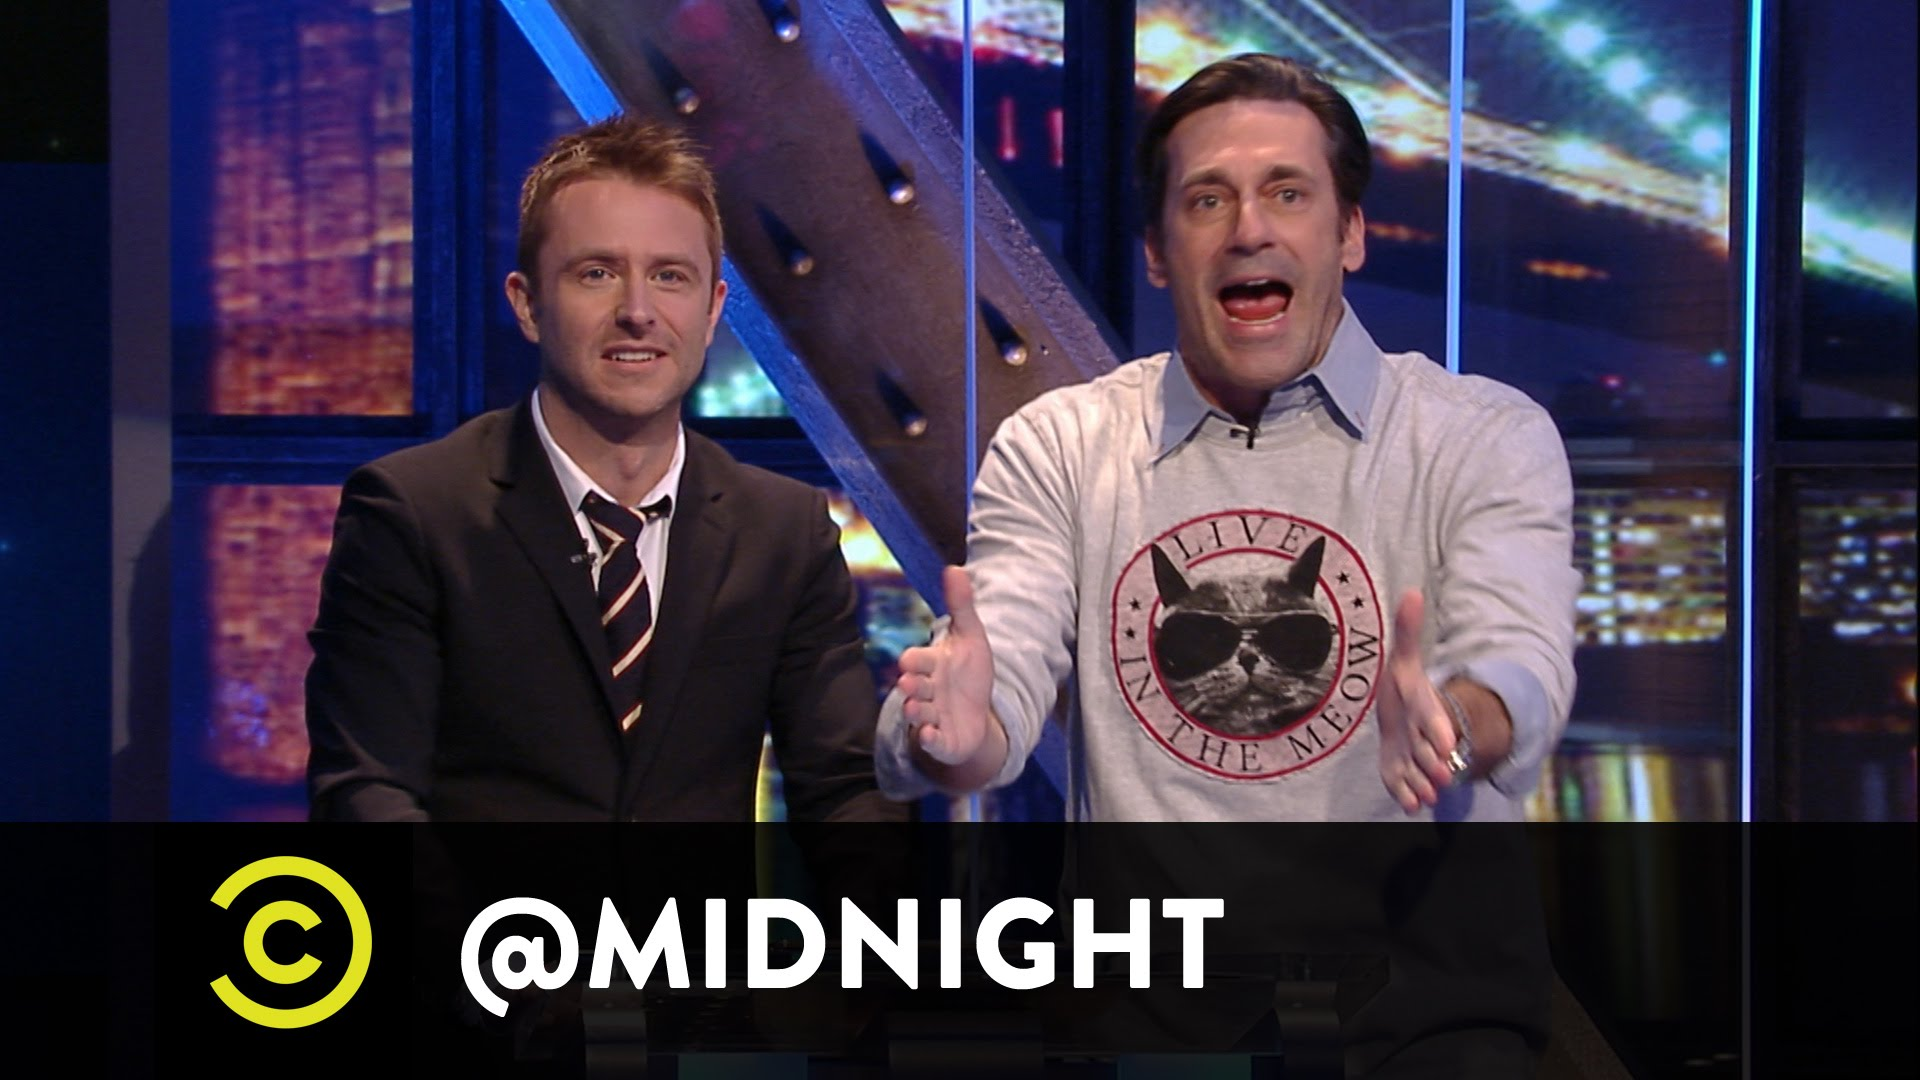 Jon Hamm Visits Chris Hardwick's 'Midnight' Game Show to Pose Questions About 'Bodega Cats'